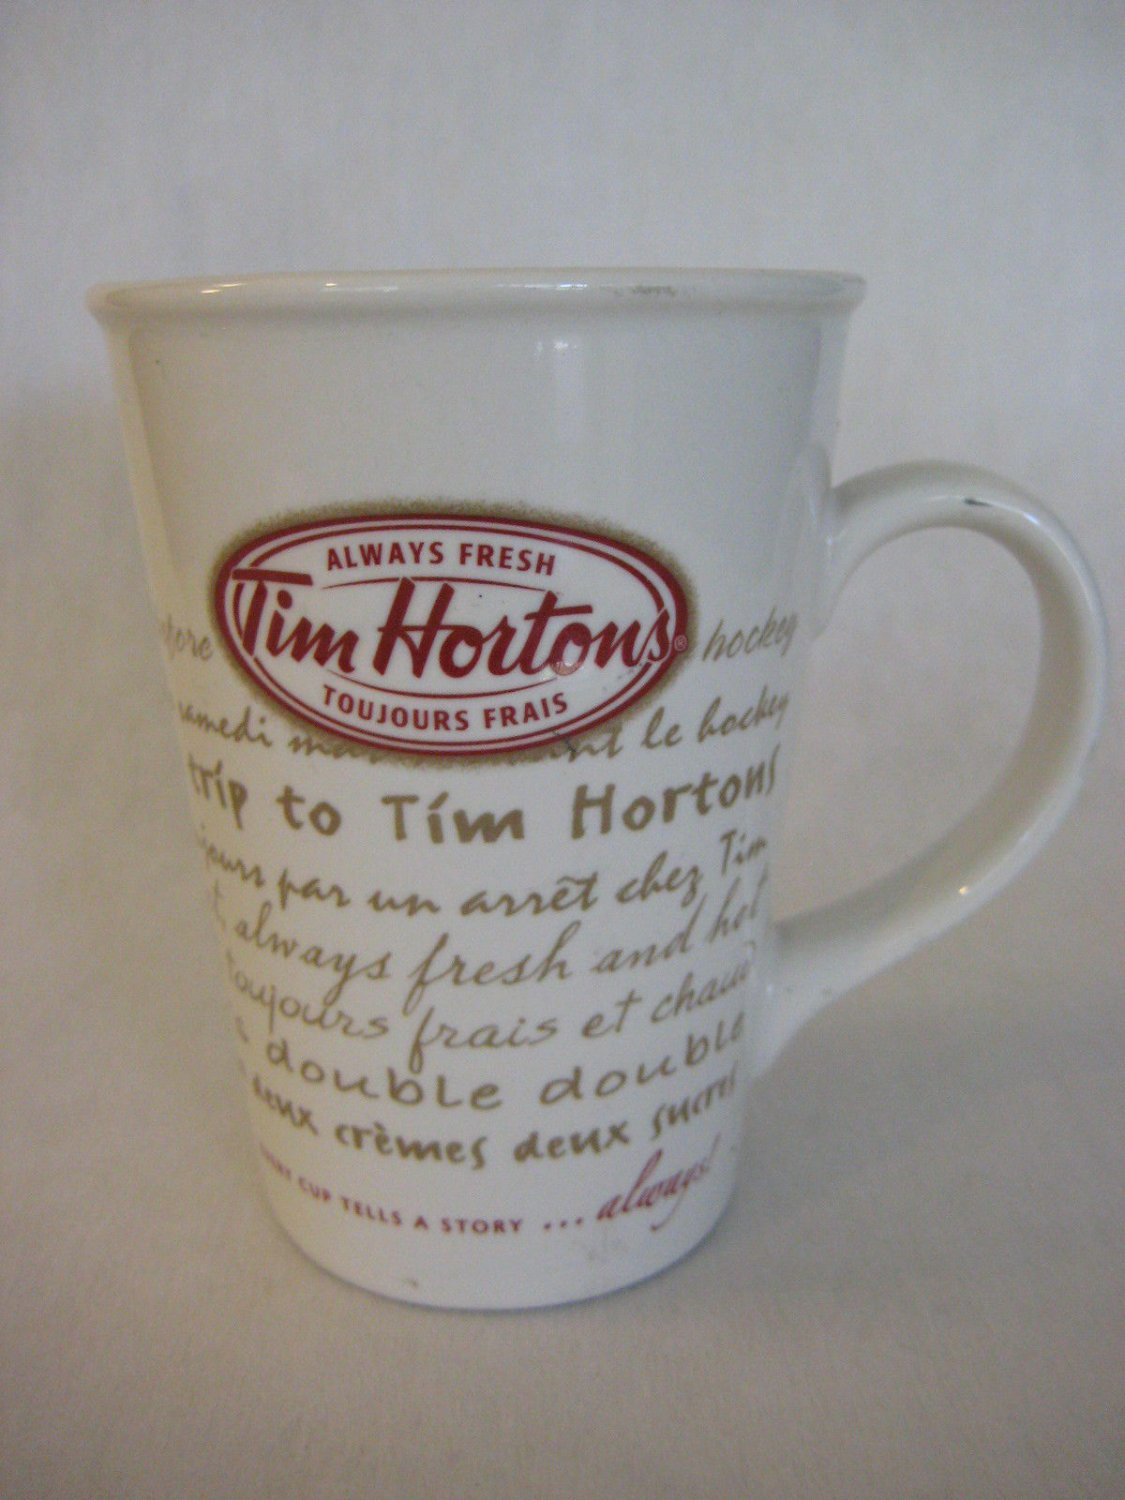 2009 Tim Horton's Always Fresh Road Trip #9 Limited Edition Coffee Mug